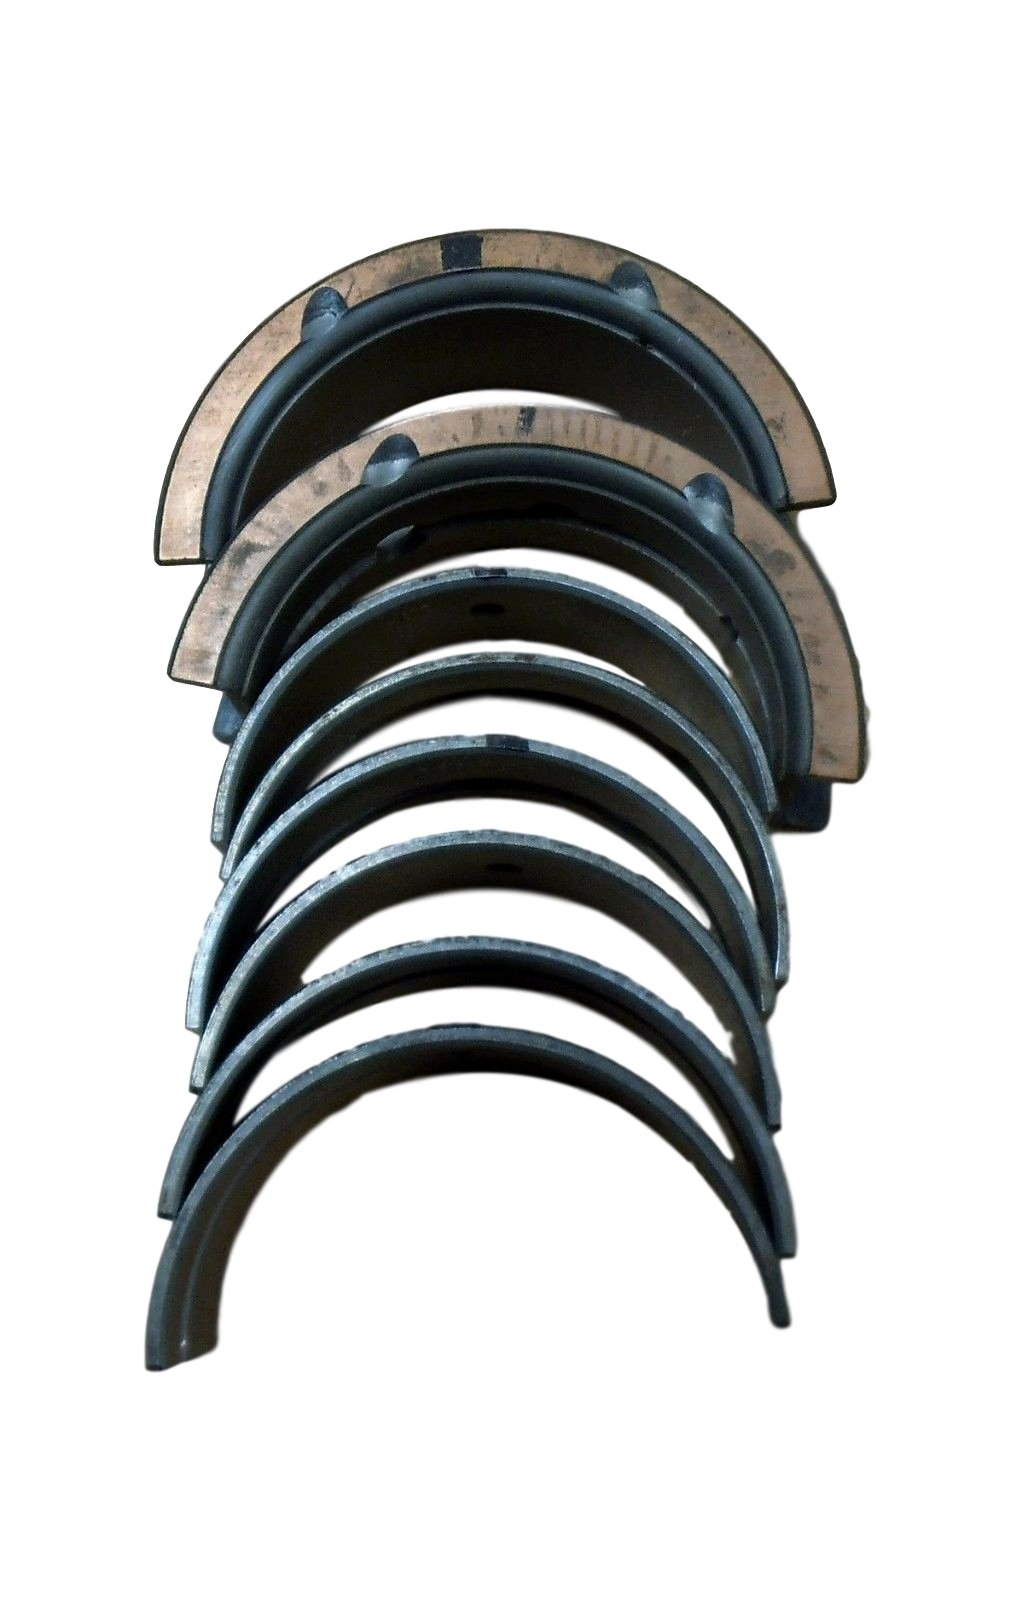 Perfect Circle/Clevite 77 MS189P10 Main Bearing 1953-1969 Chevrolet Chrysler GMC by Perfect Circle/Clevite